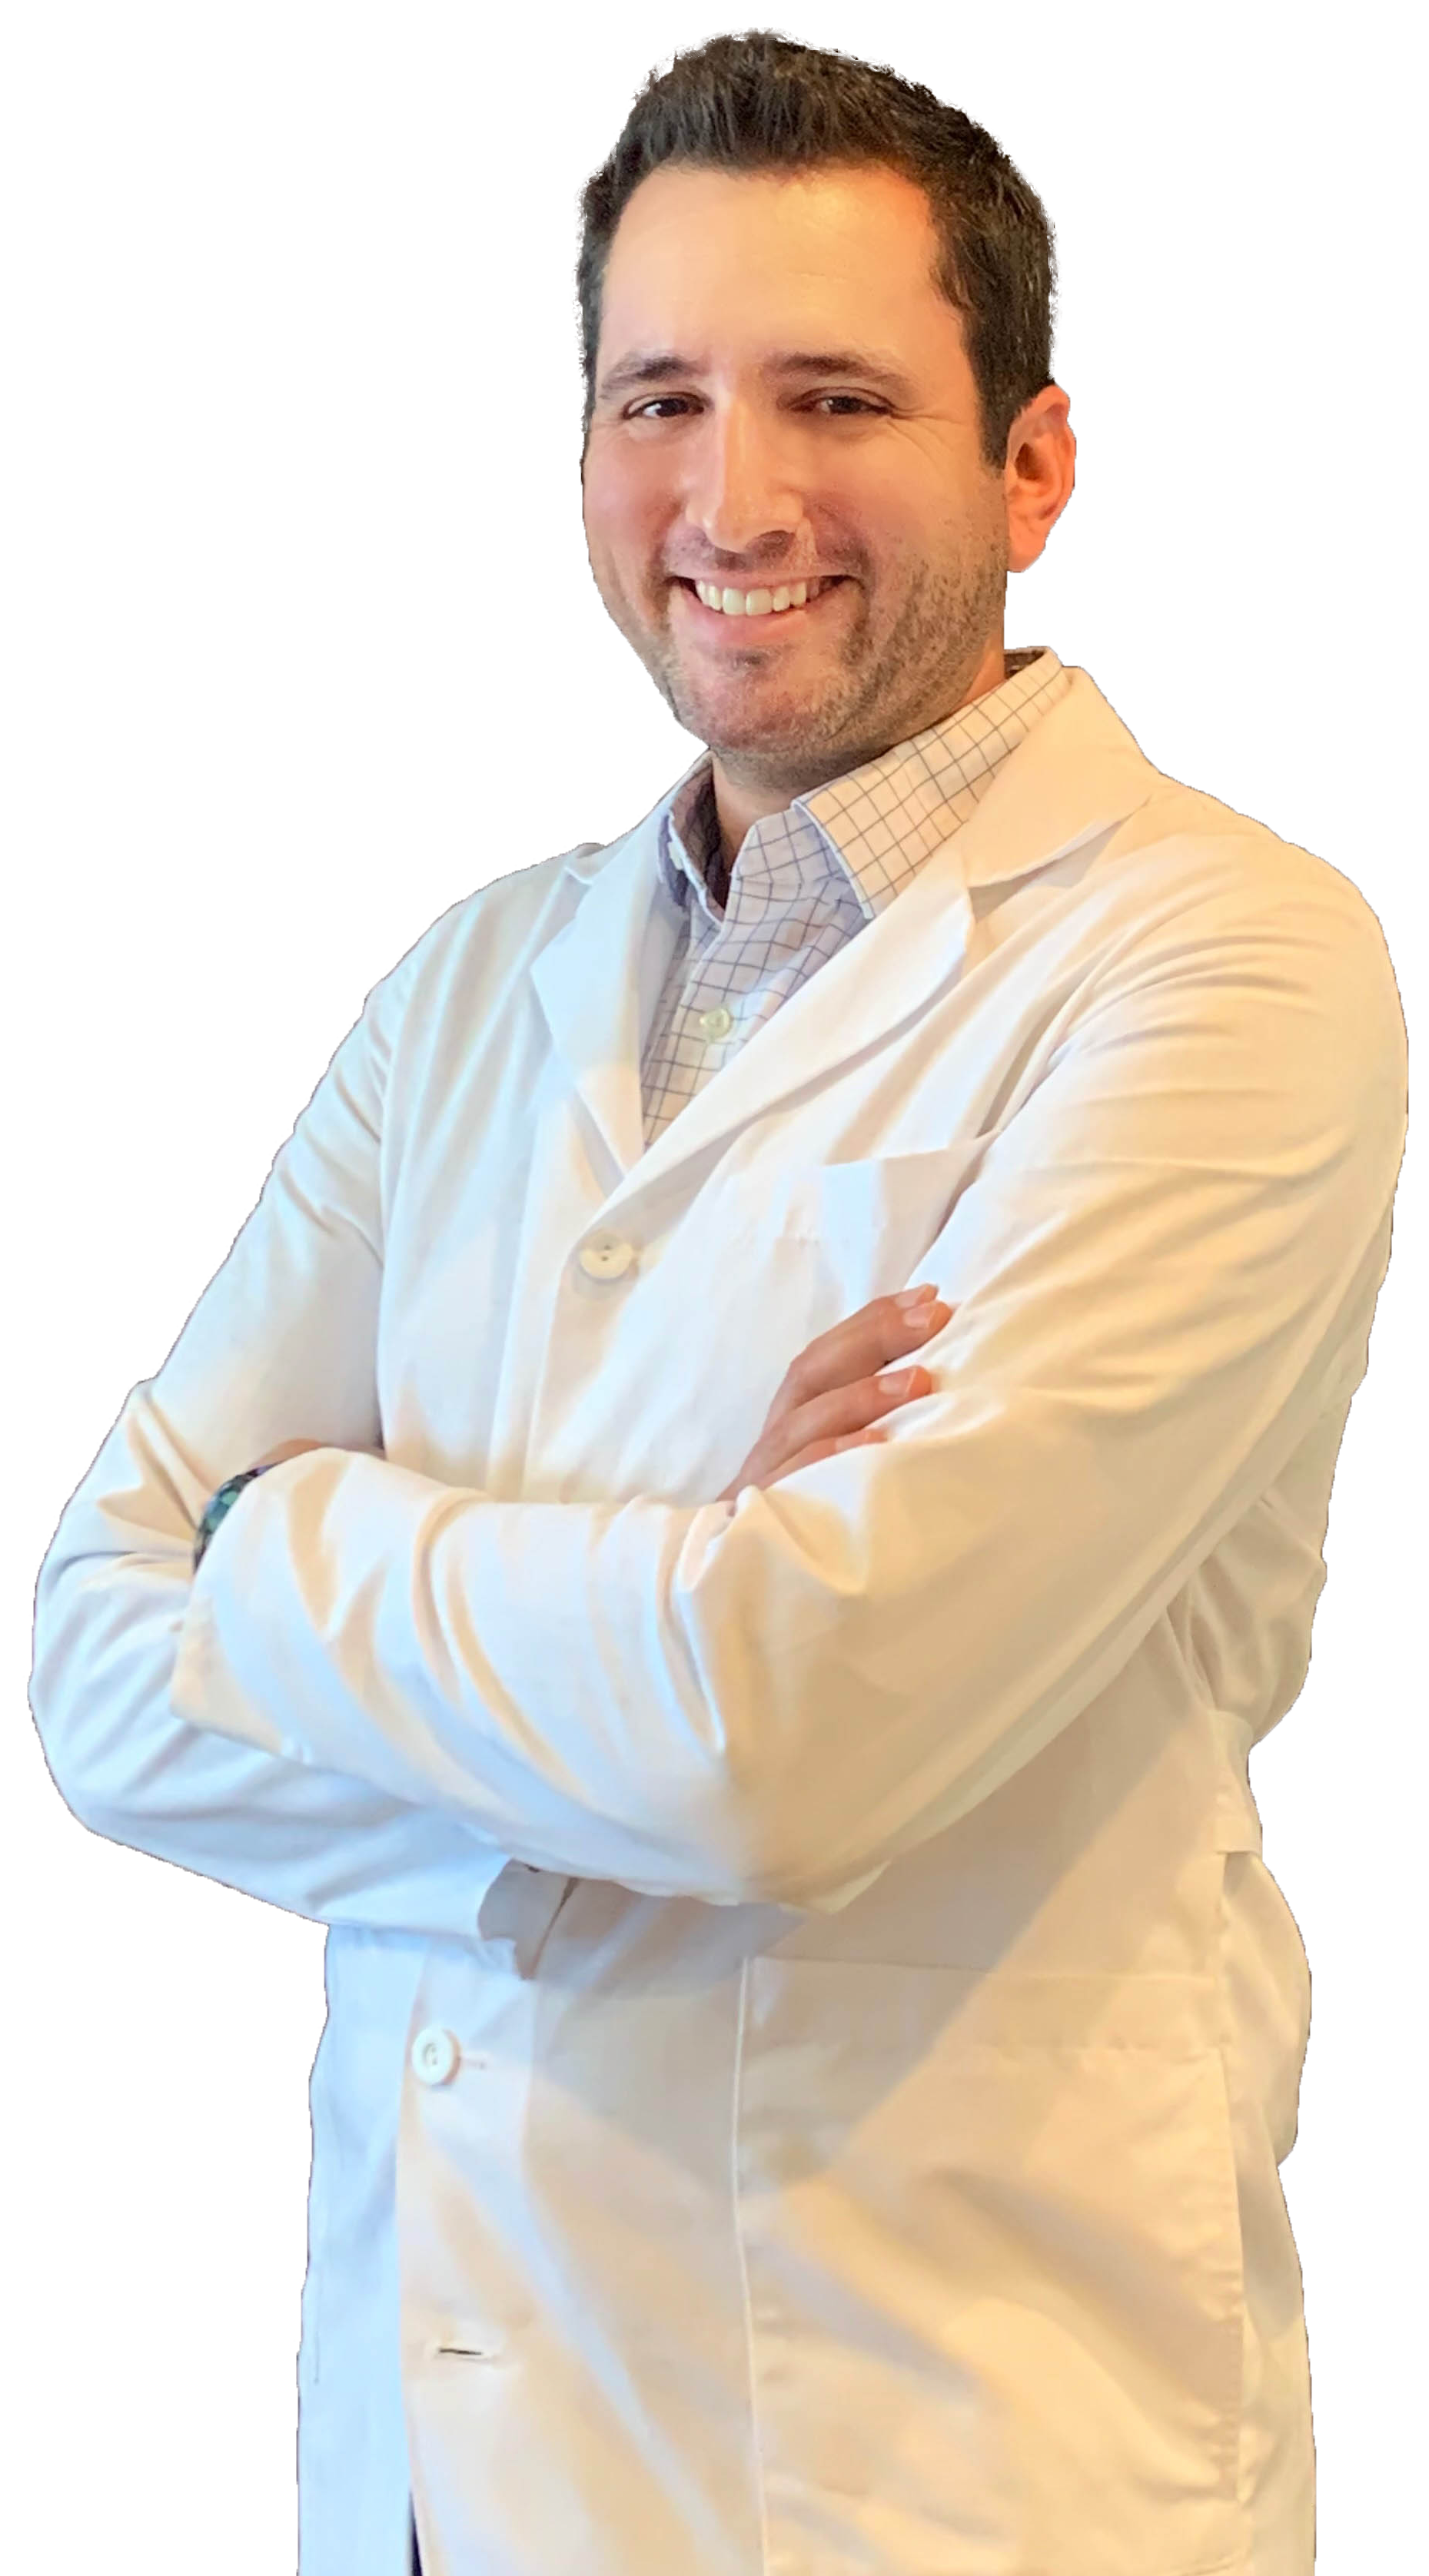 Dr. David Hoffman, DMD, DHSc Orthodontist & Owner